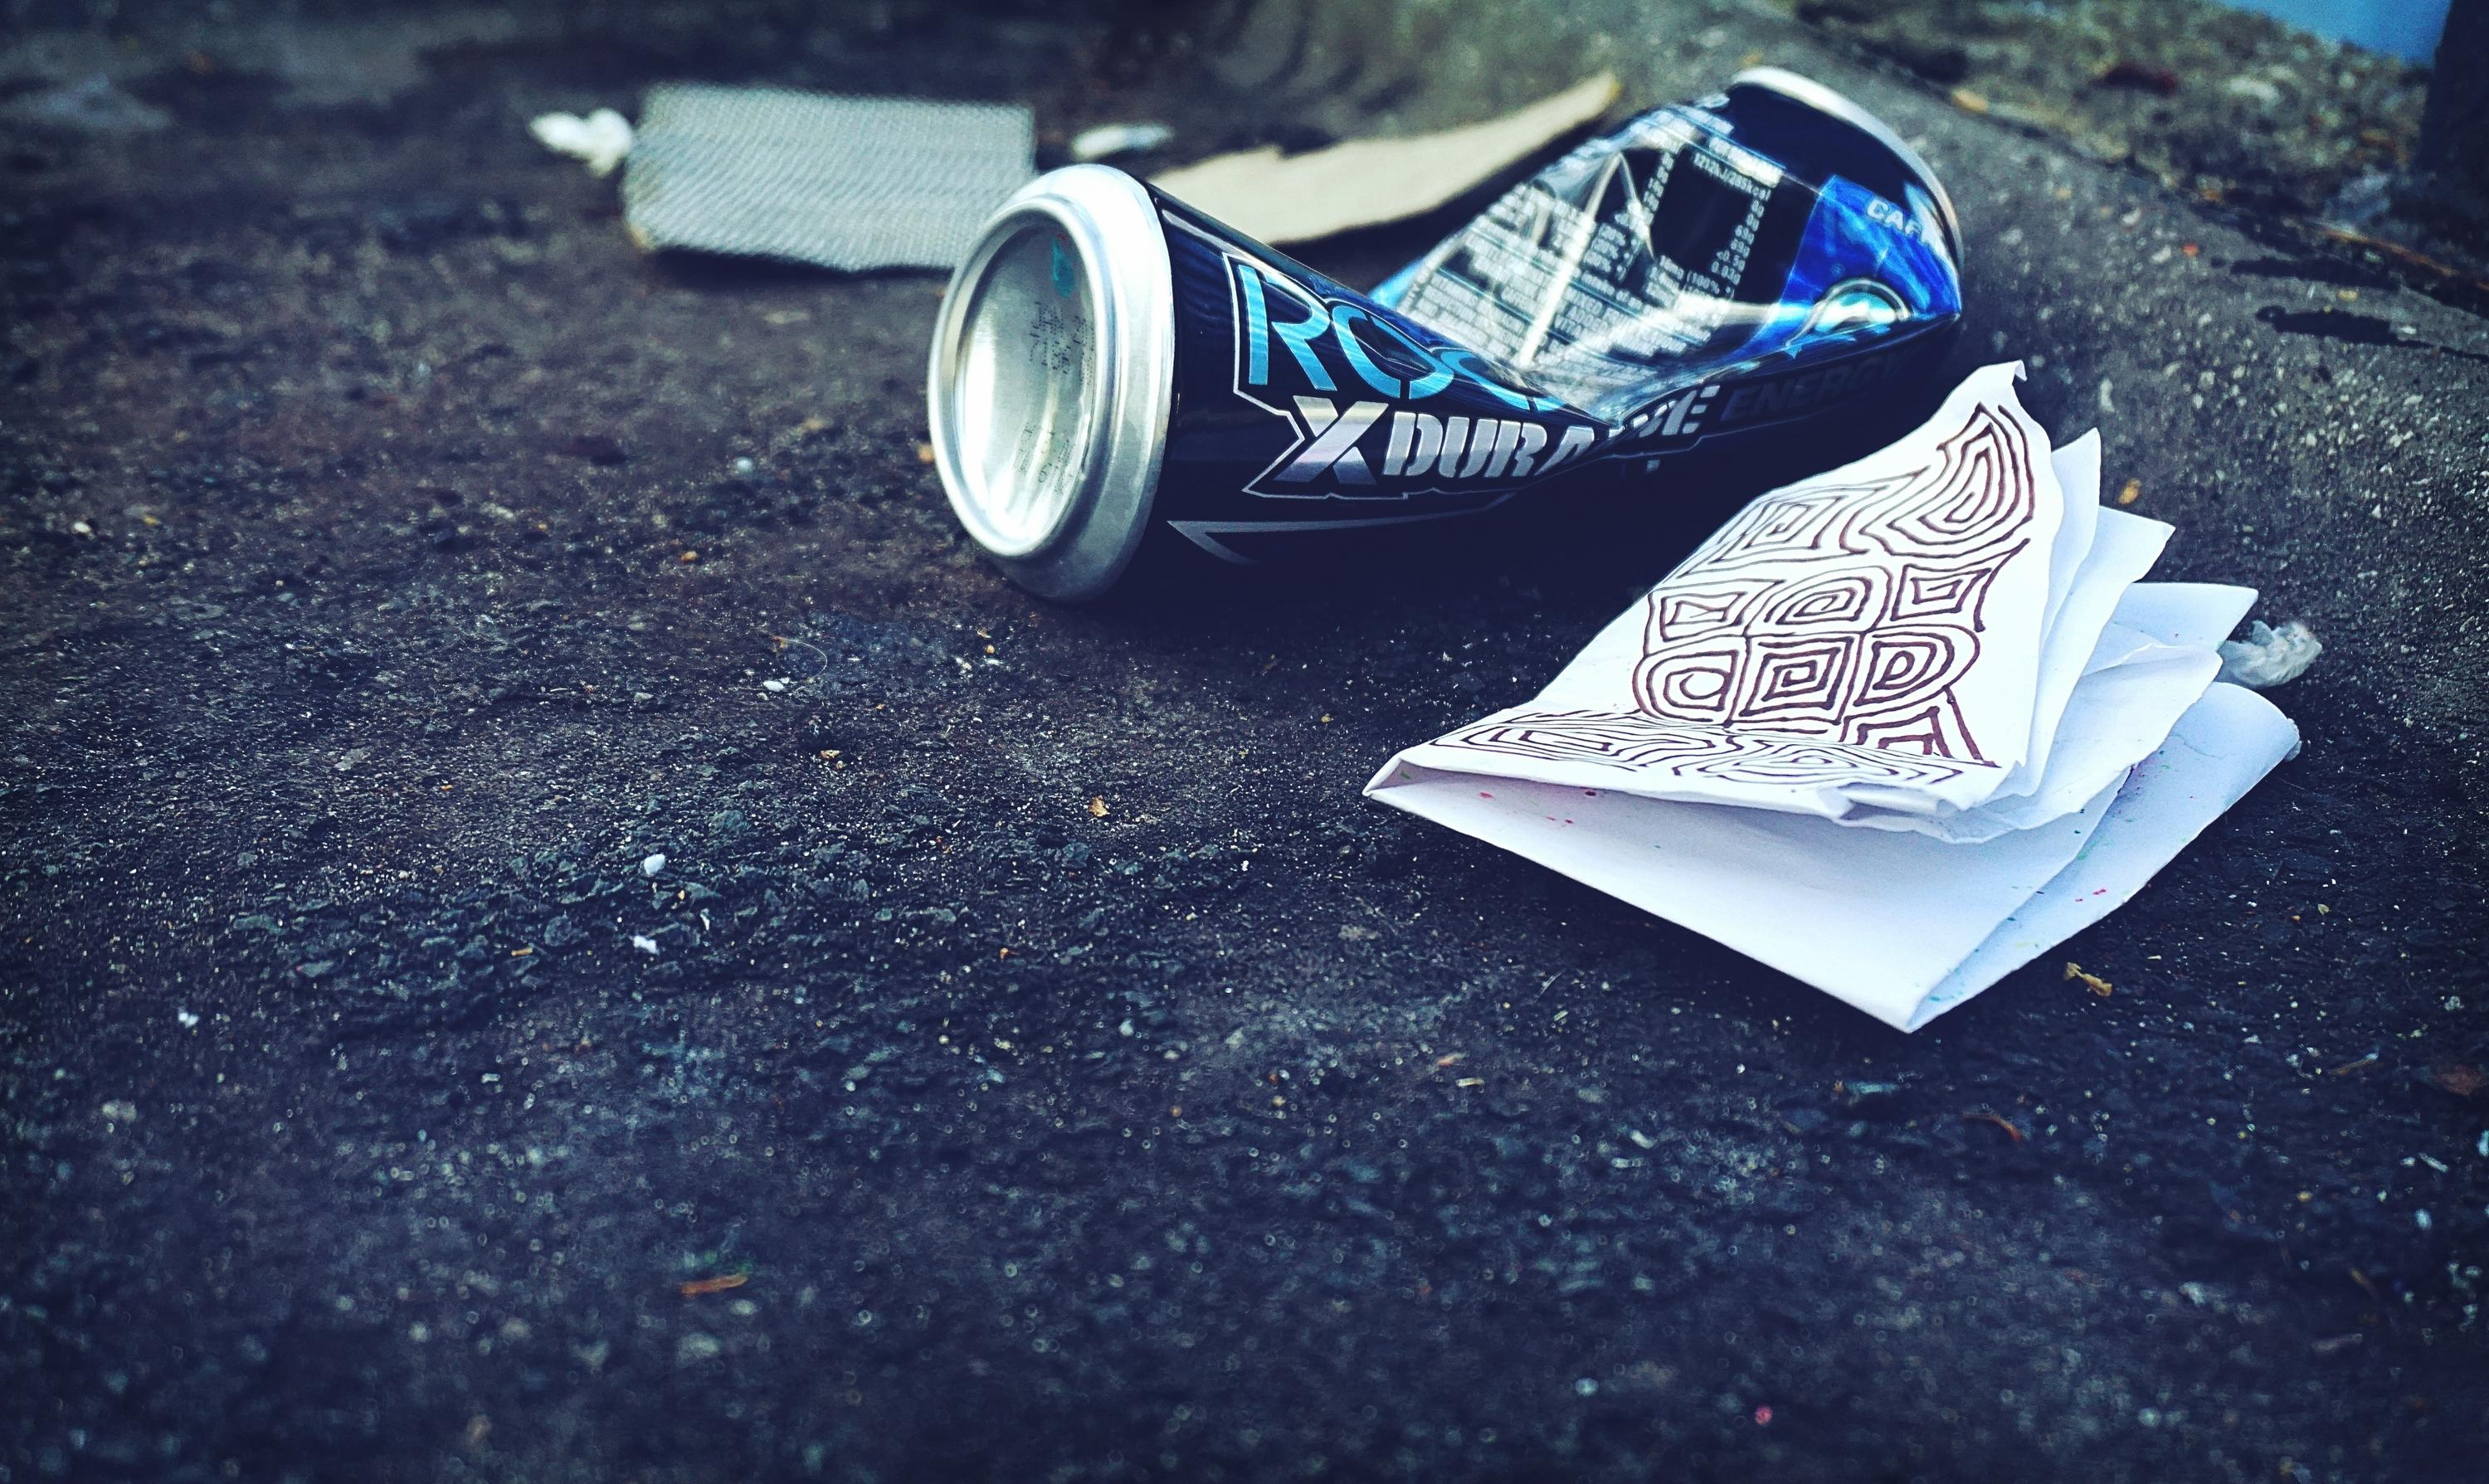 Litter on a road-Photo by Suzy Hazelwood from Pexels